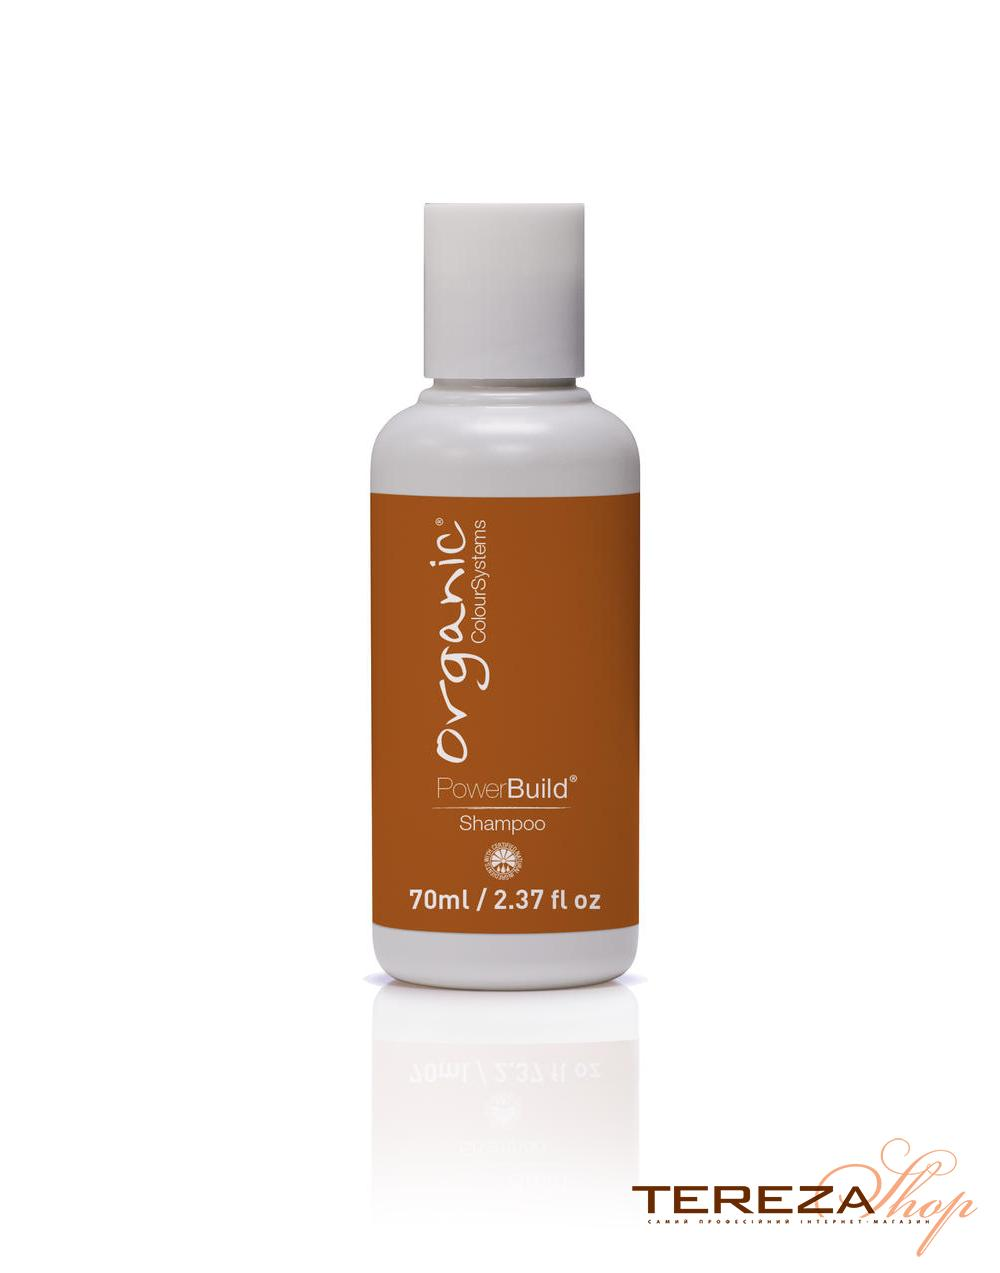 POWER BUILD SHAMPOO 70ml ORGANIC | Tereza Shop